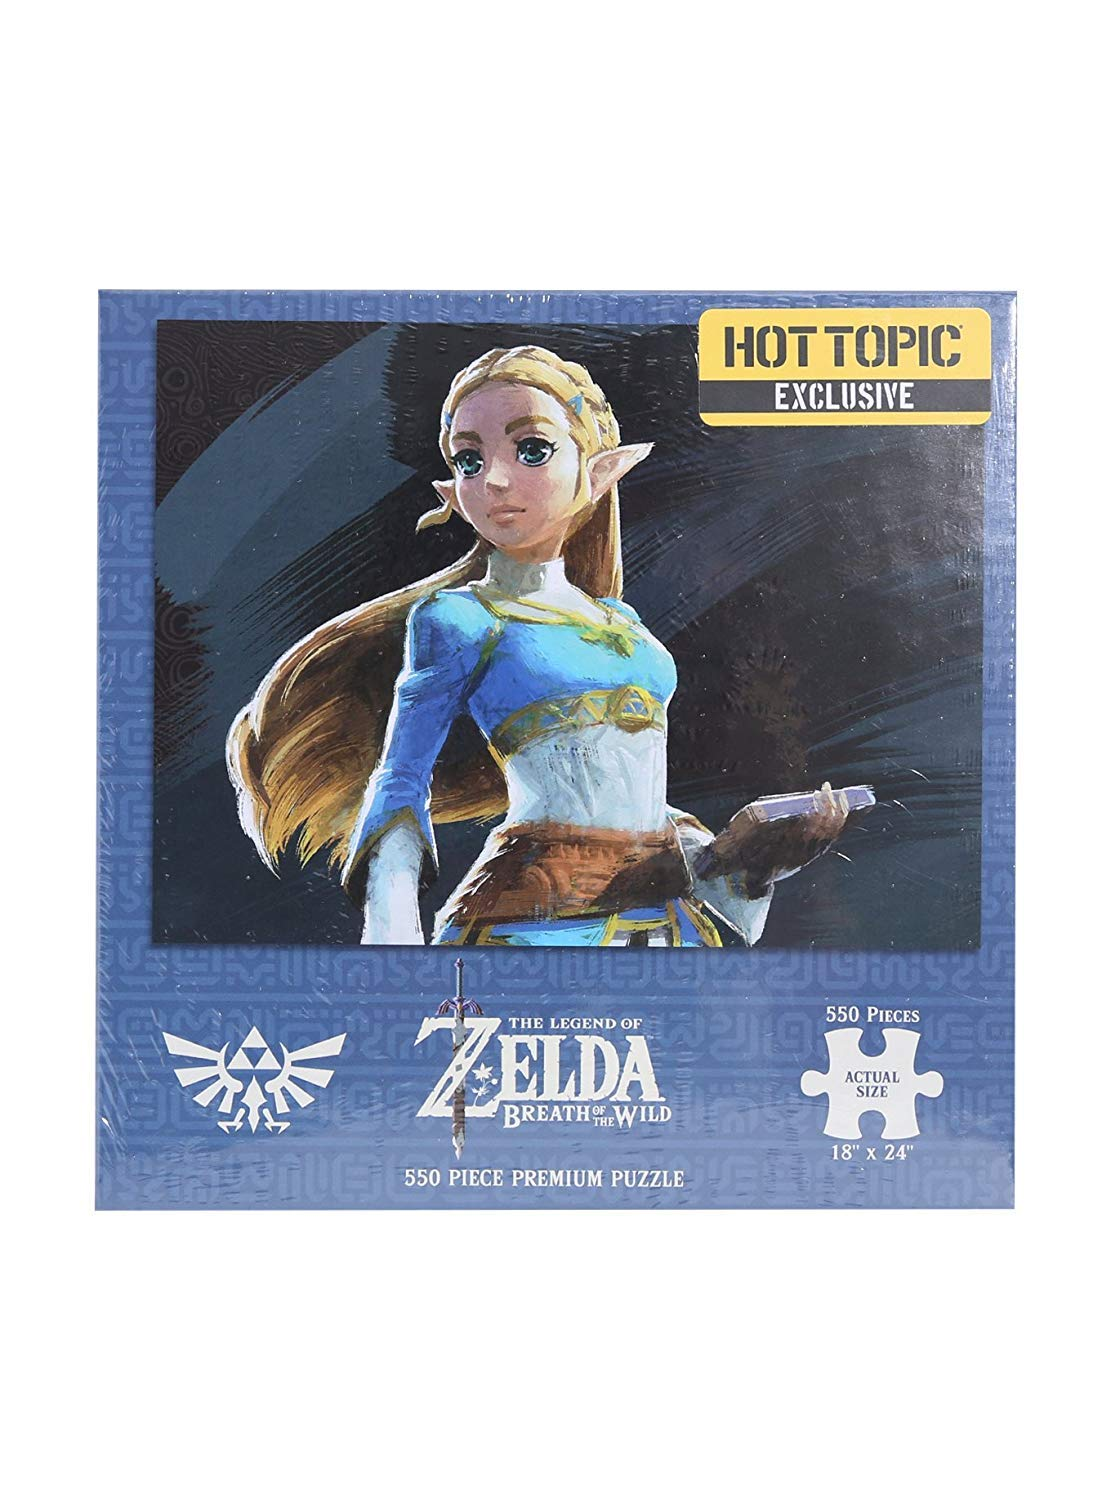 Breath Of The Wild Princess Zelda Hot Topic Exclusive Puzzle USAopoly SG/_B075PZVYBX/_US The Legend of Zelda